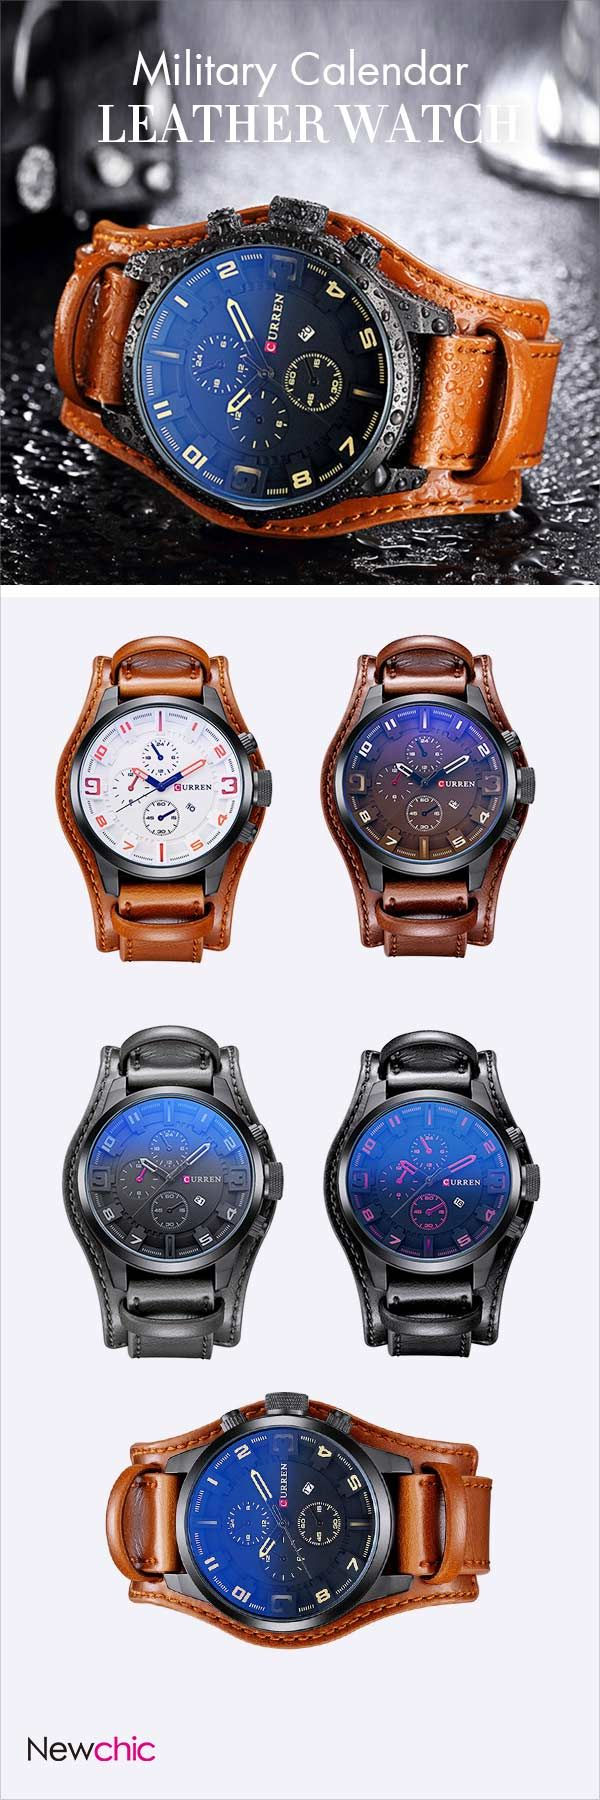 [Newchic Online Shopping] 50%OFF Military Calendar Leather Watch